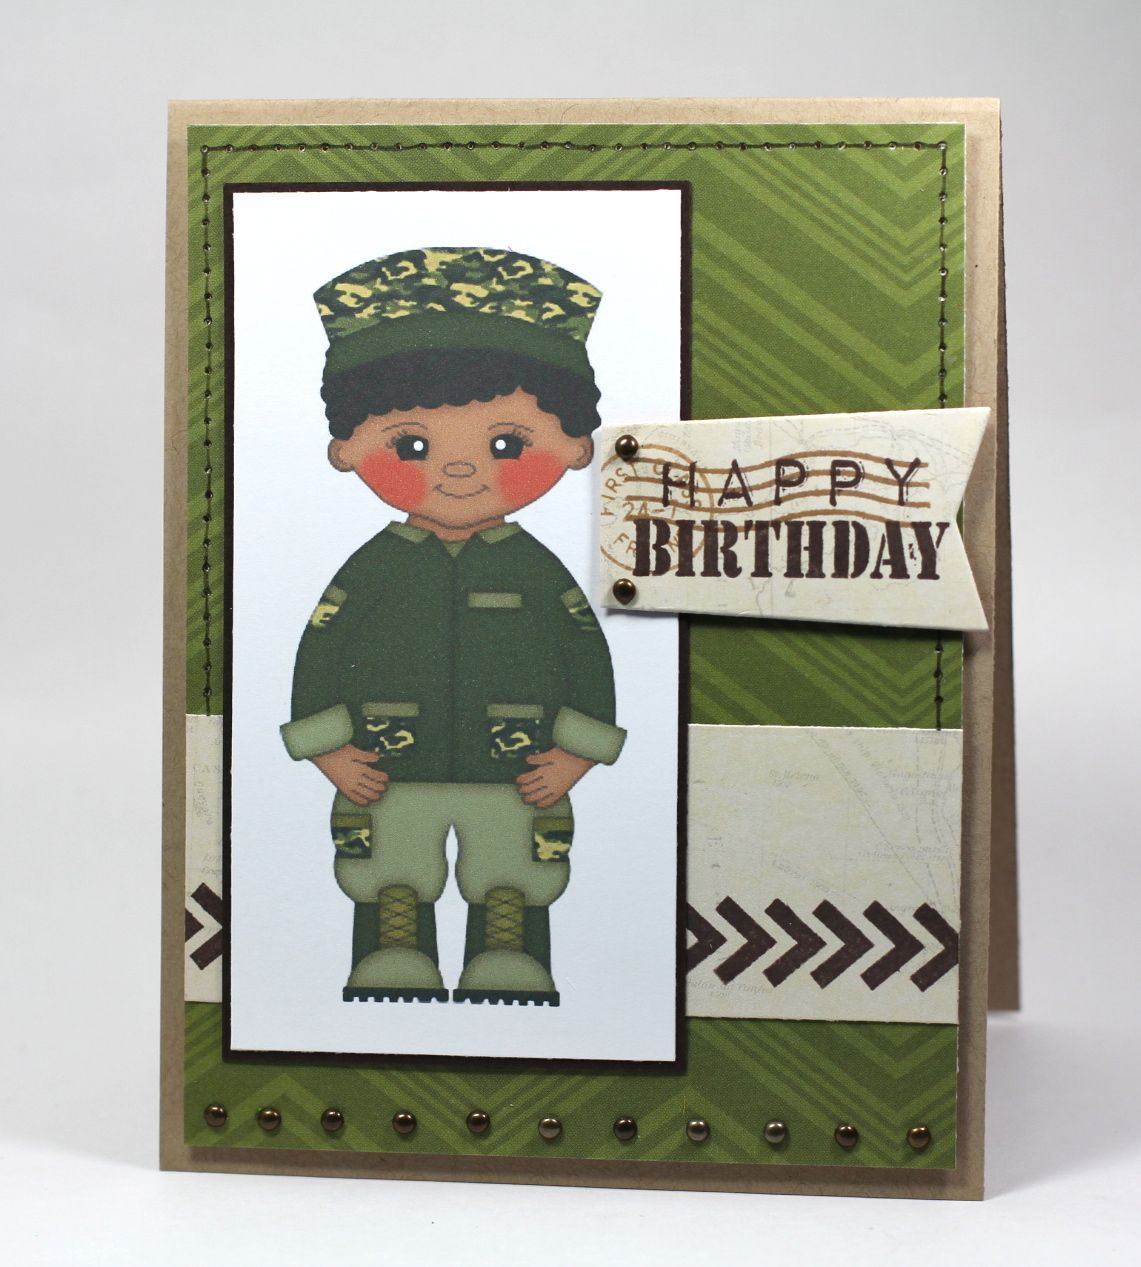 Happy Birthday Soldier Boy by AR Resale Clipart